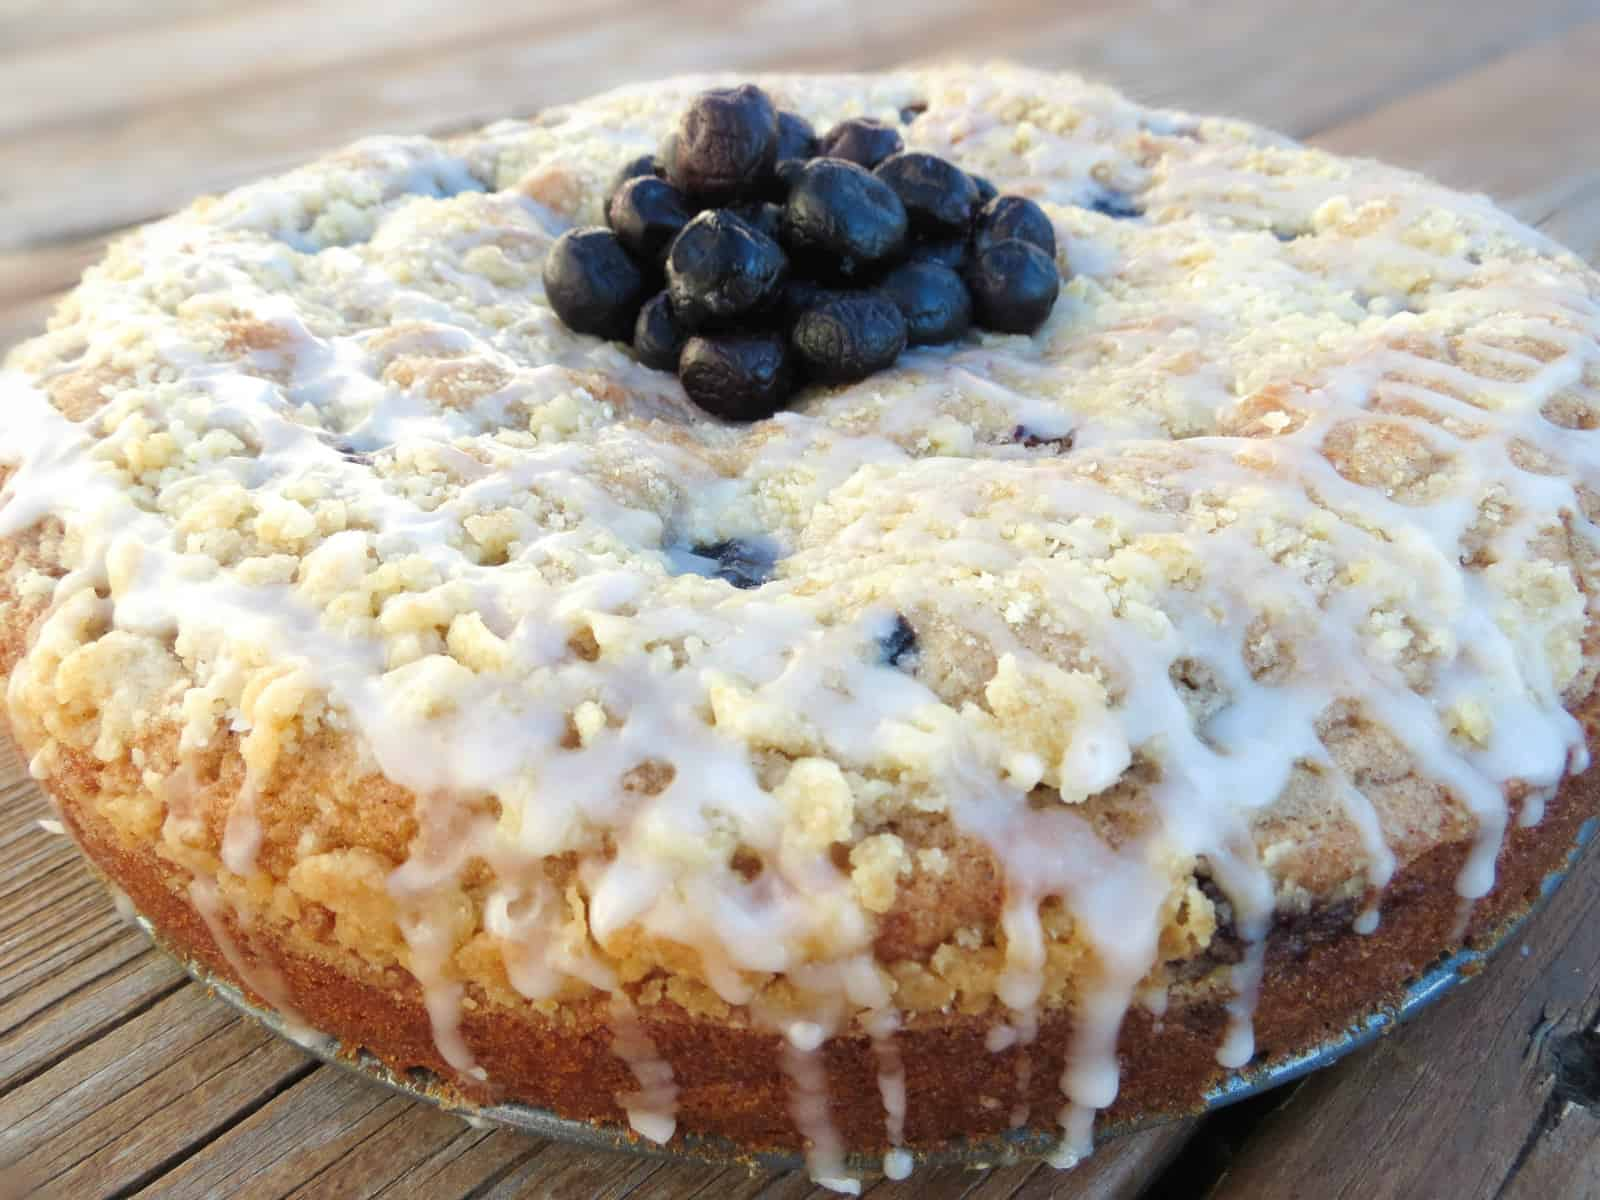 How To Make Blueberry Crumb Cake